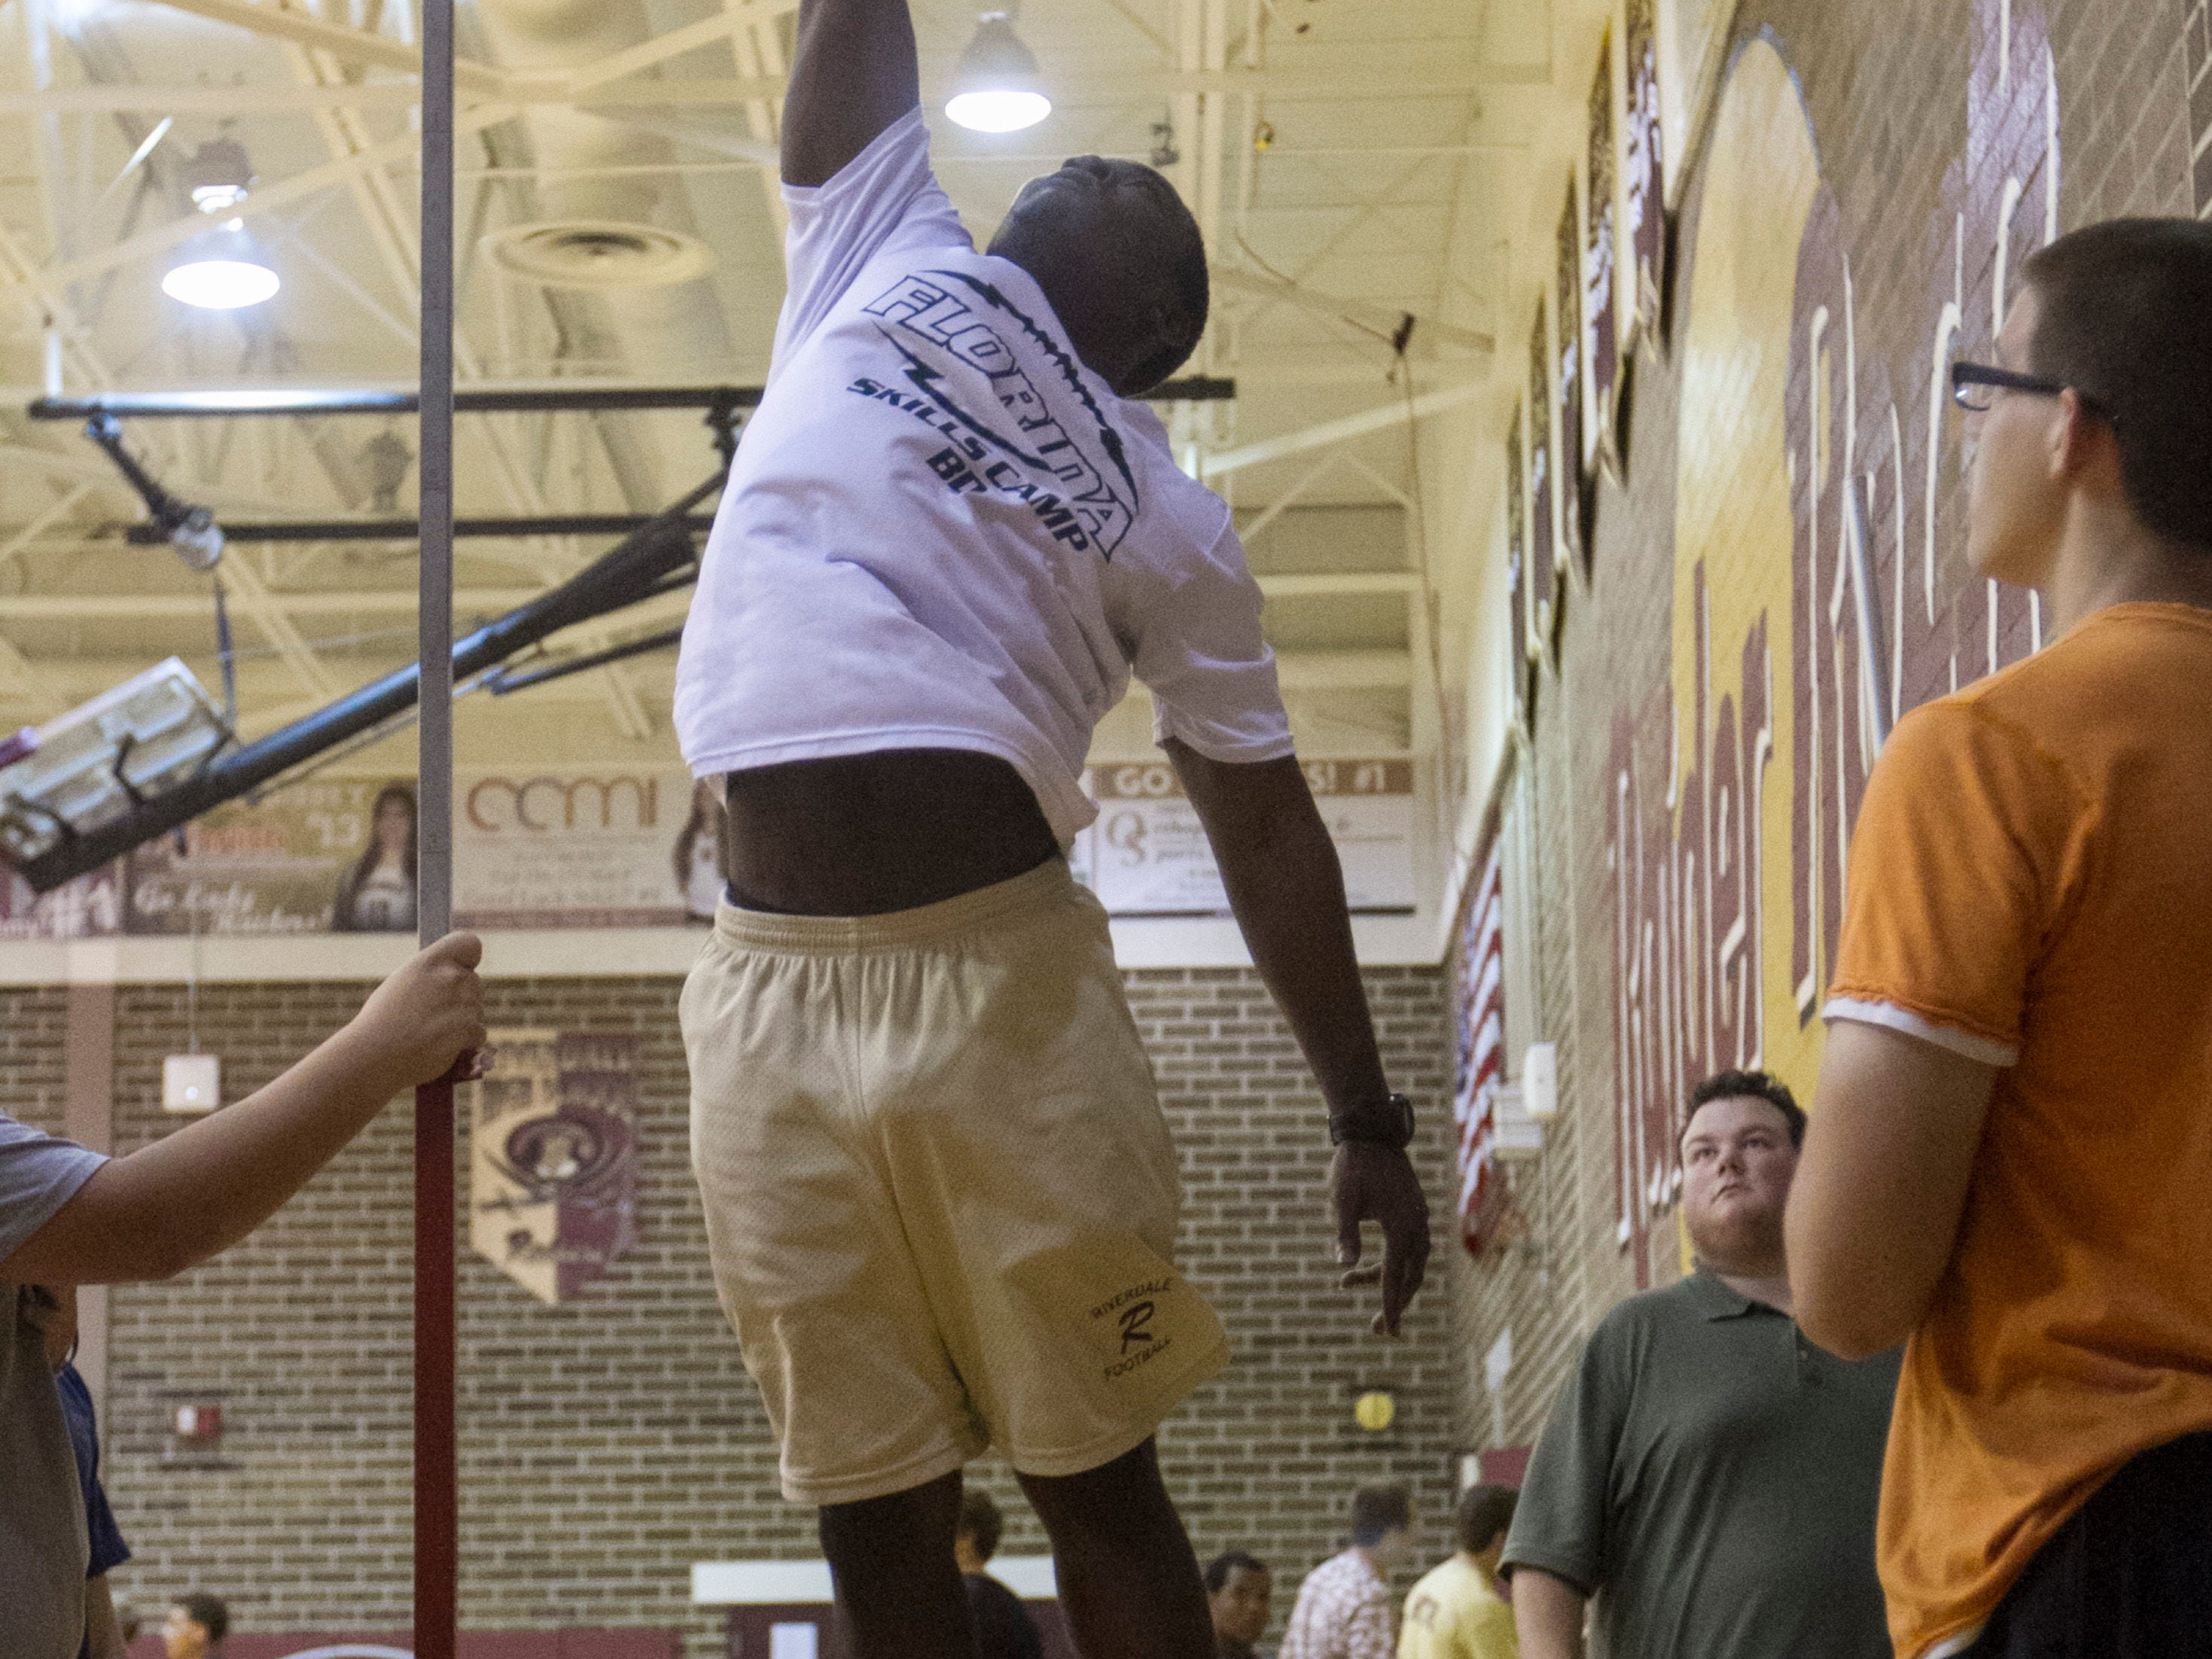 Andres Bartley tests his vertical leap at Riverdale High School.